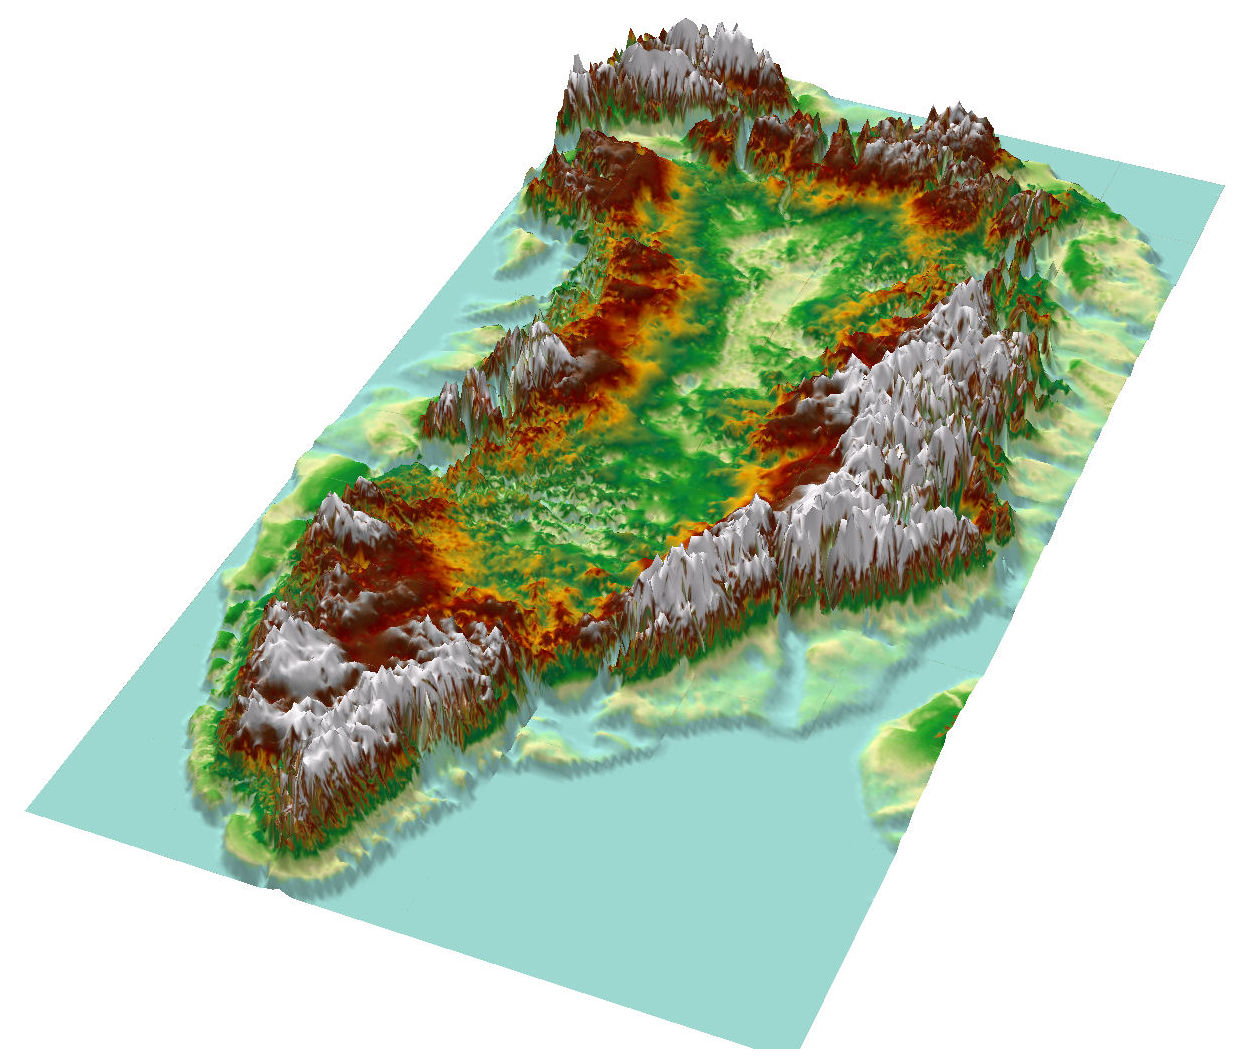 Topographic map of Greenland from bedrock elevation data